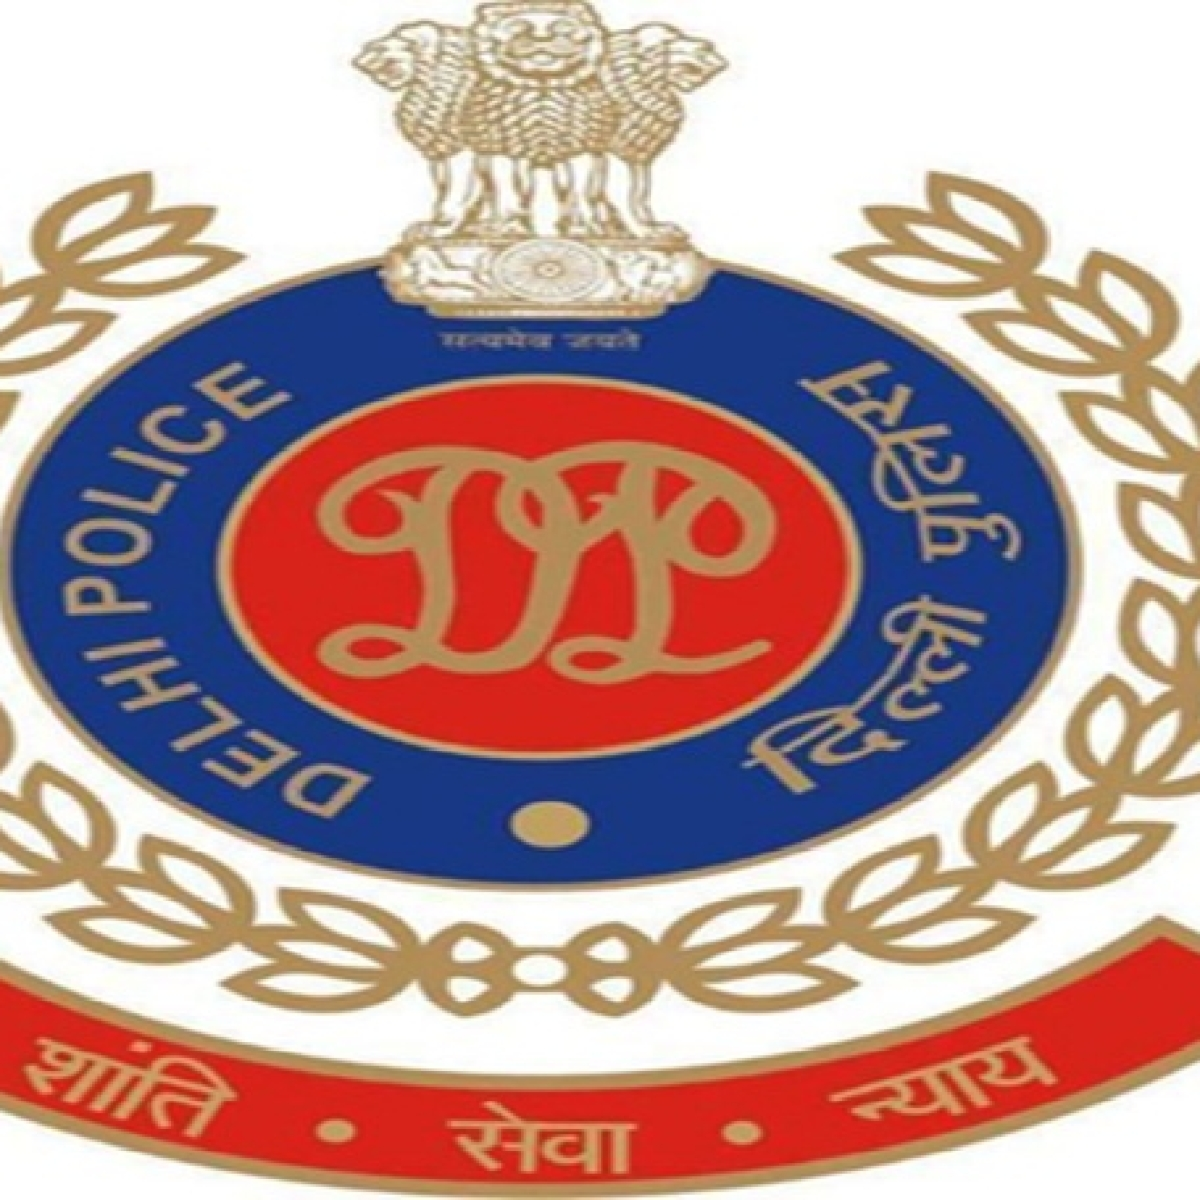 Stern action to be taken against anyone found bursting, selling firecrackers: Delhi Police Commissioner